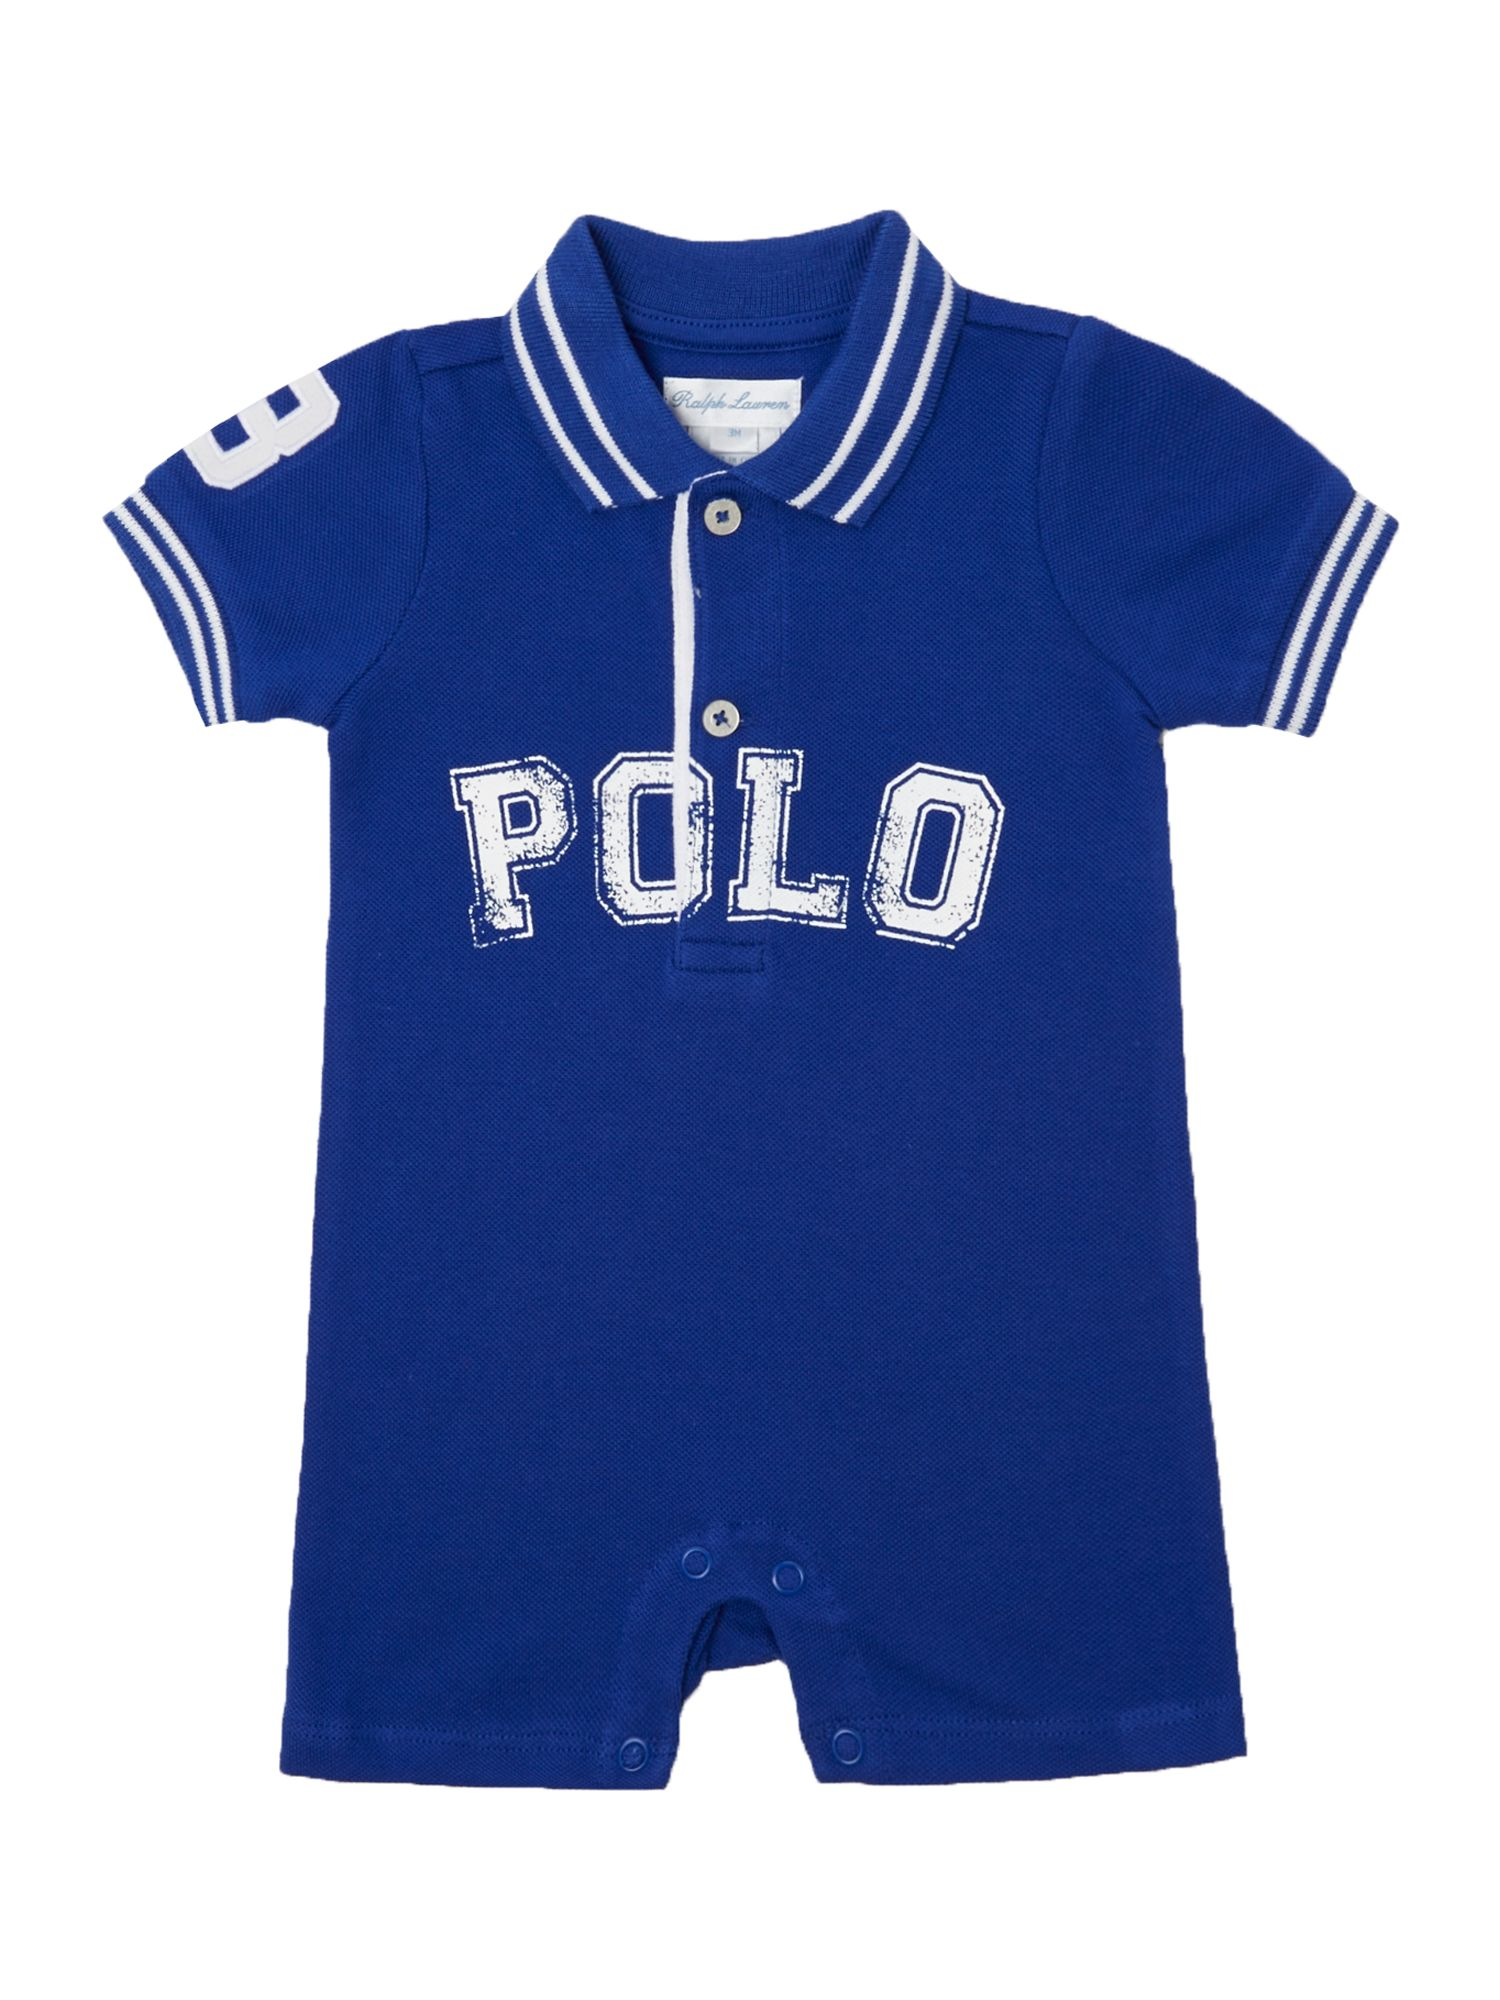 Babys polo text shorts all in one